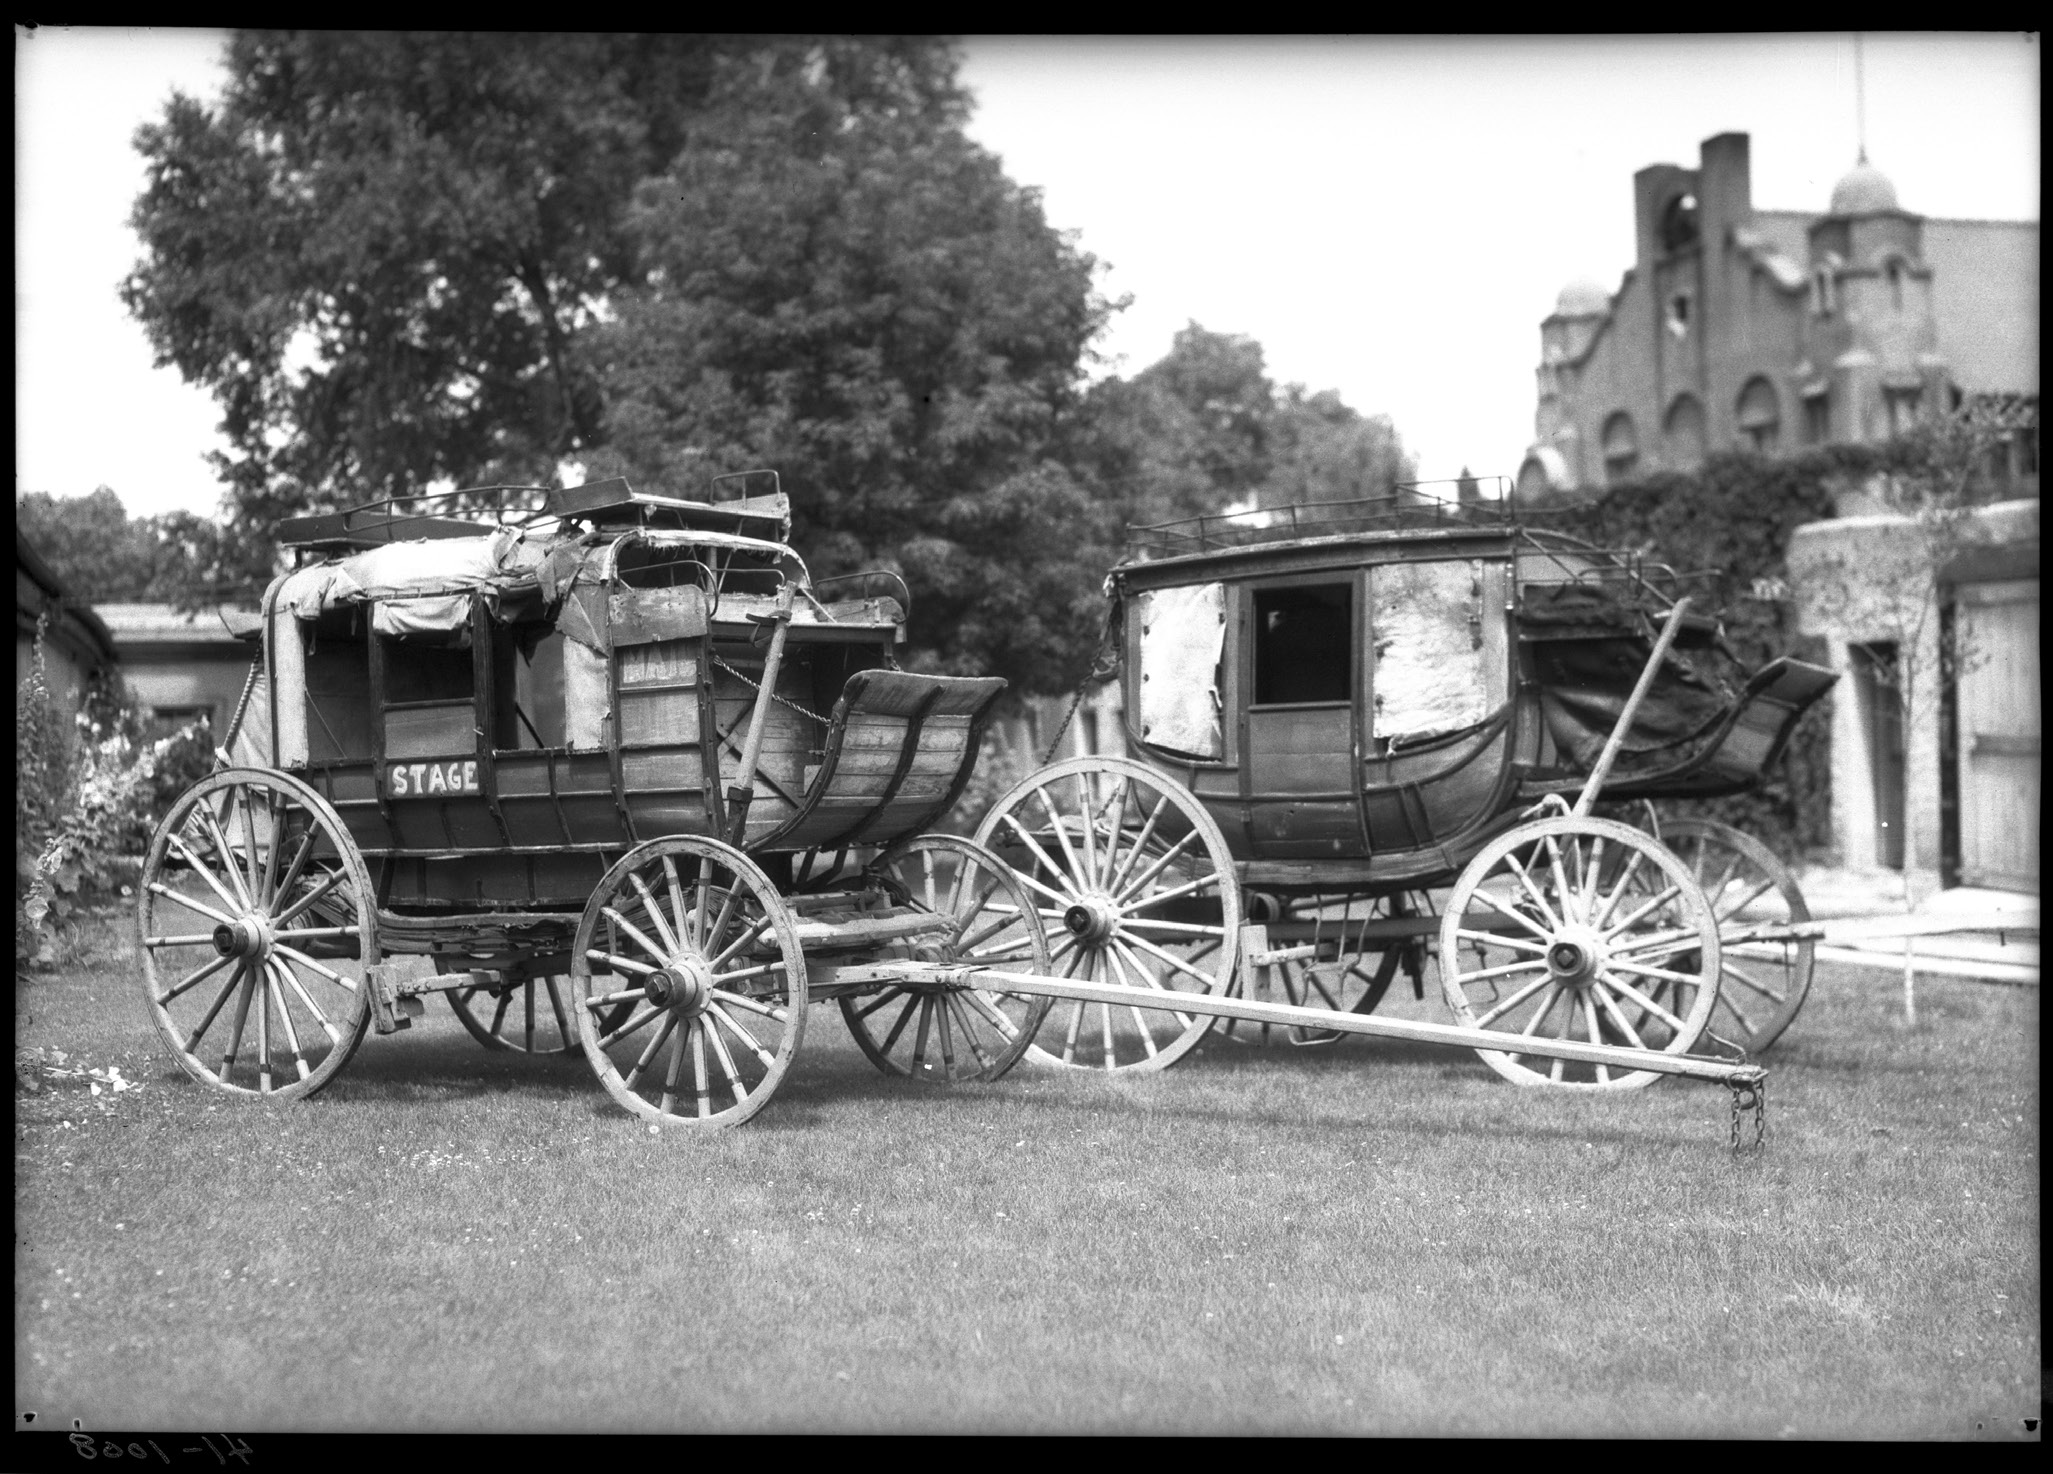 Two Barlow, Sanderson stagecoaches presented to the Historical Society of New Mexico by Mrs. Arthur (Frankie) Seligman, Palace of the Governors courtyard, Santa Fe, New Mexico, 1935. Palace of the Governors Photo Archives (NMHM/DCA), Neg. No. 011942.